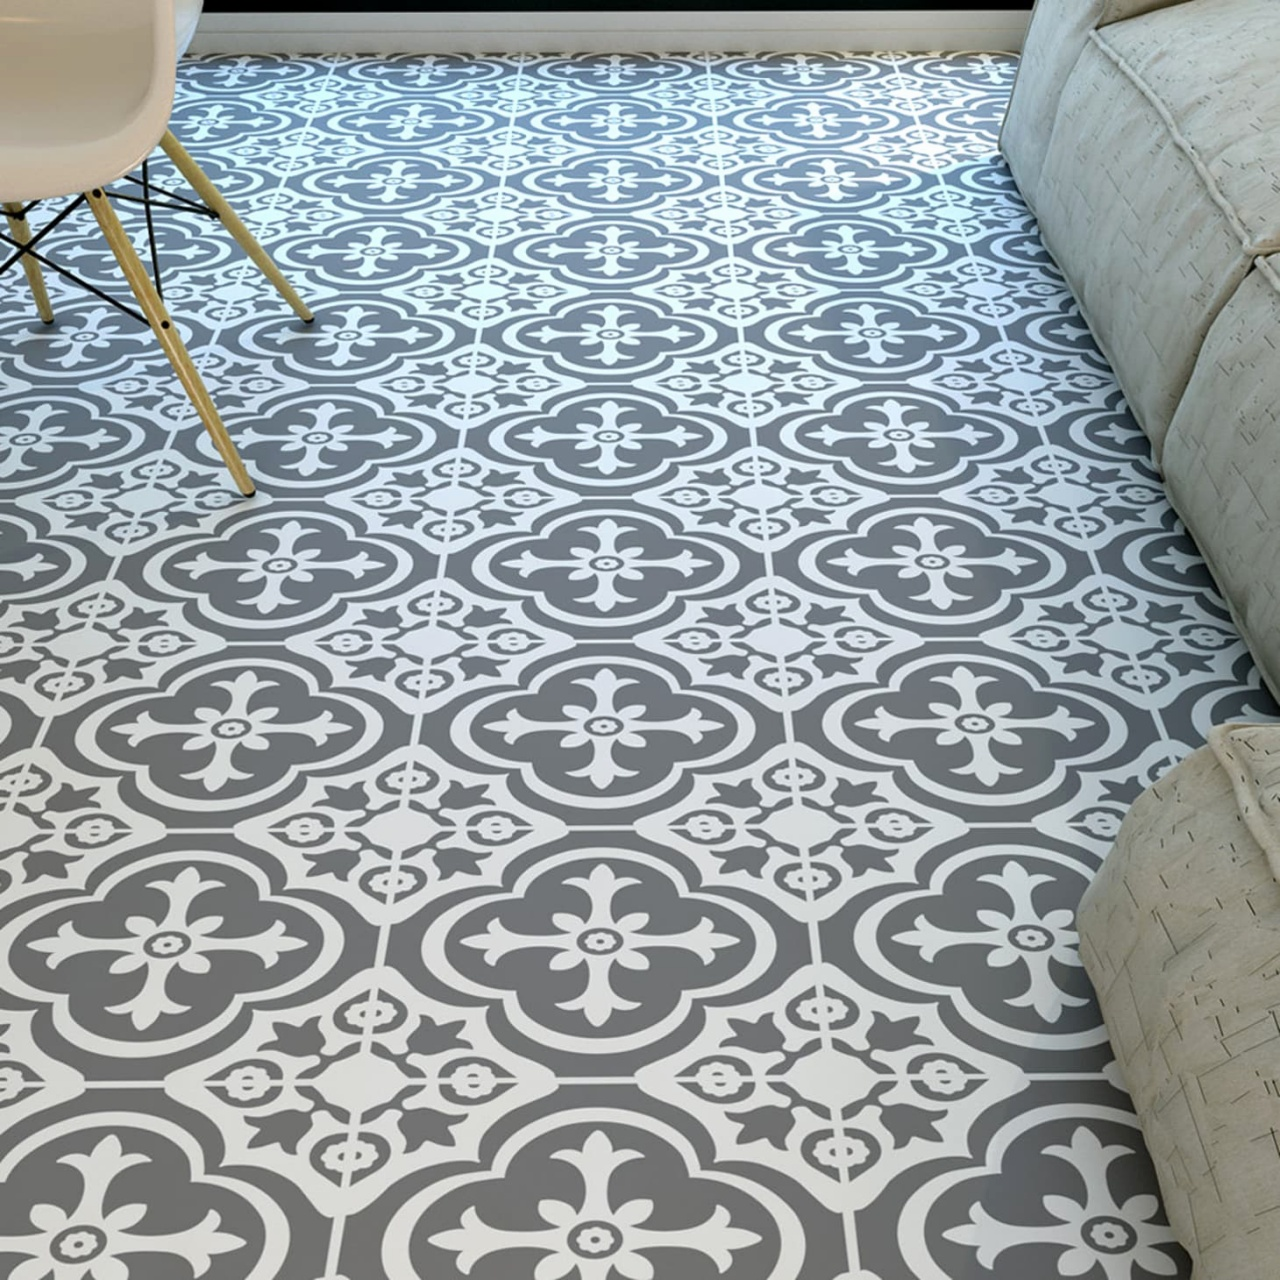 Self Adhesive Vinyl Floor Tiles